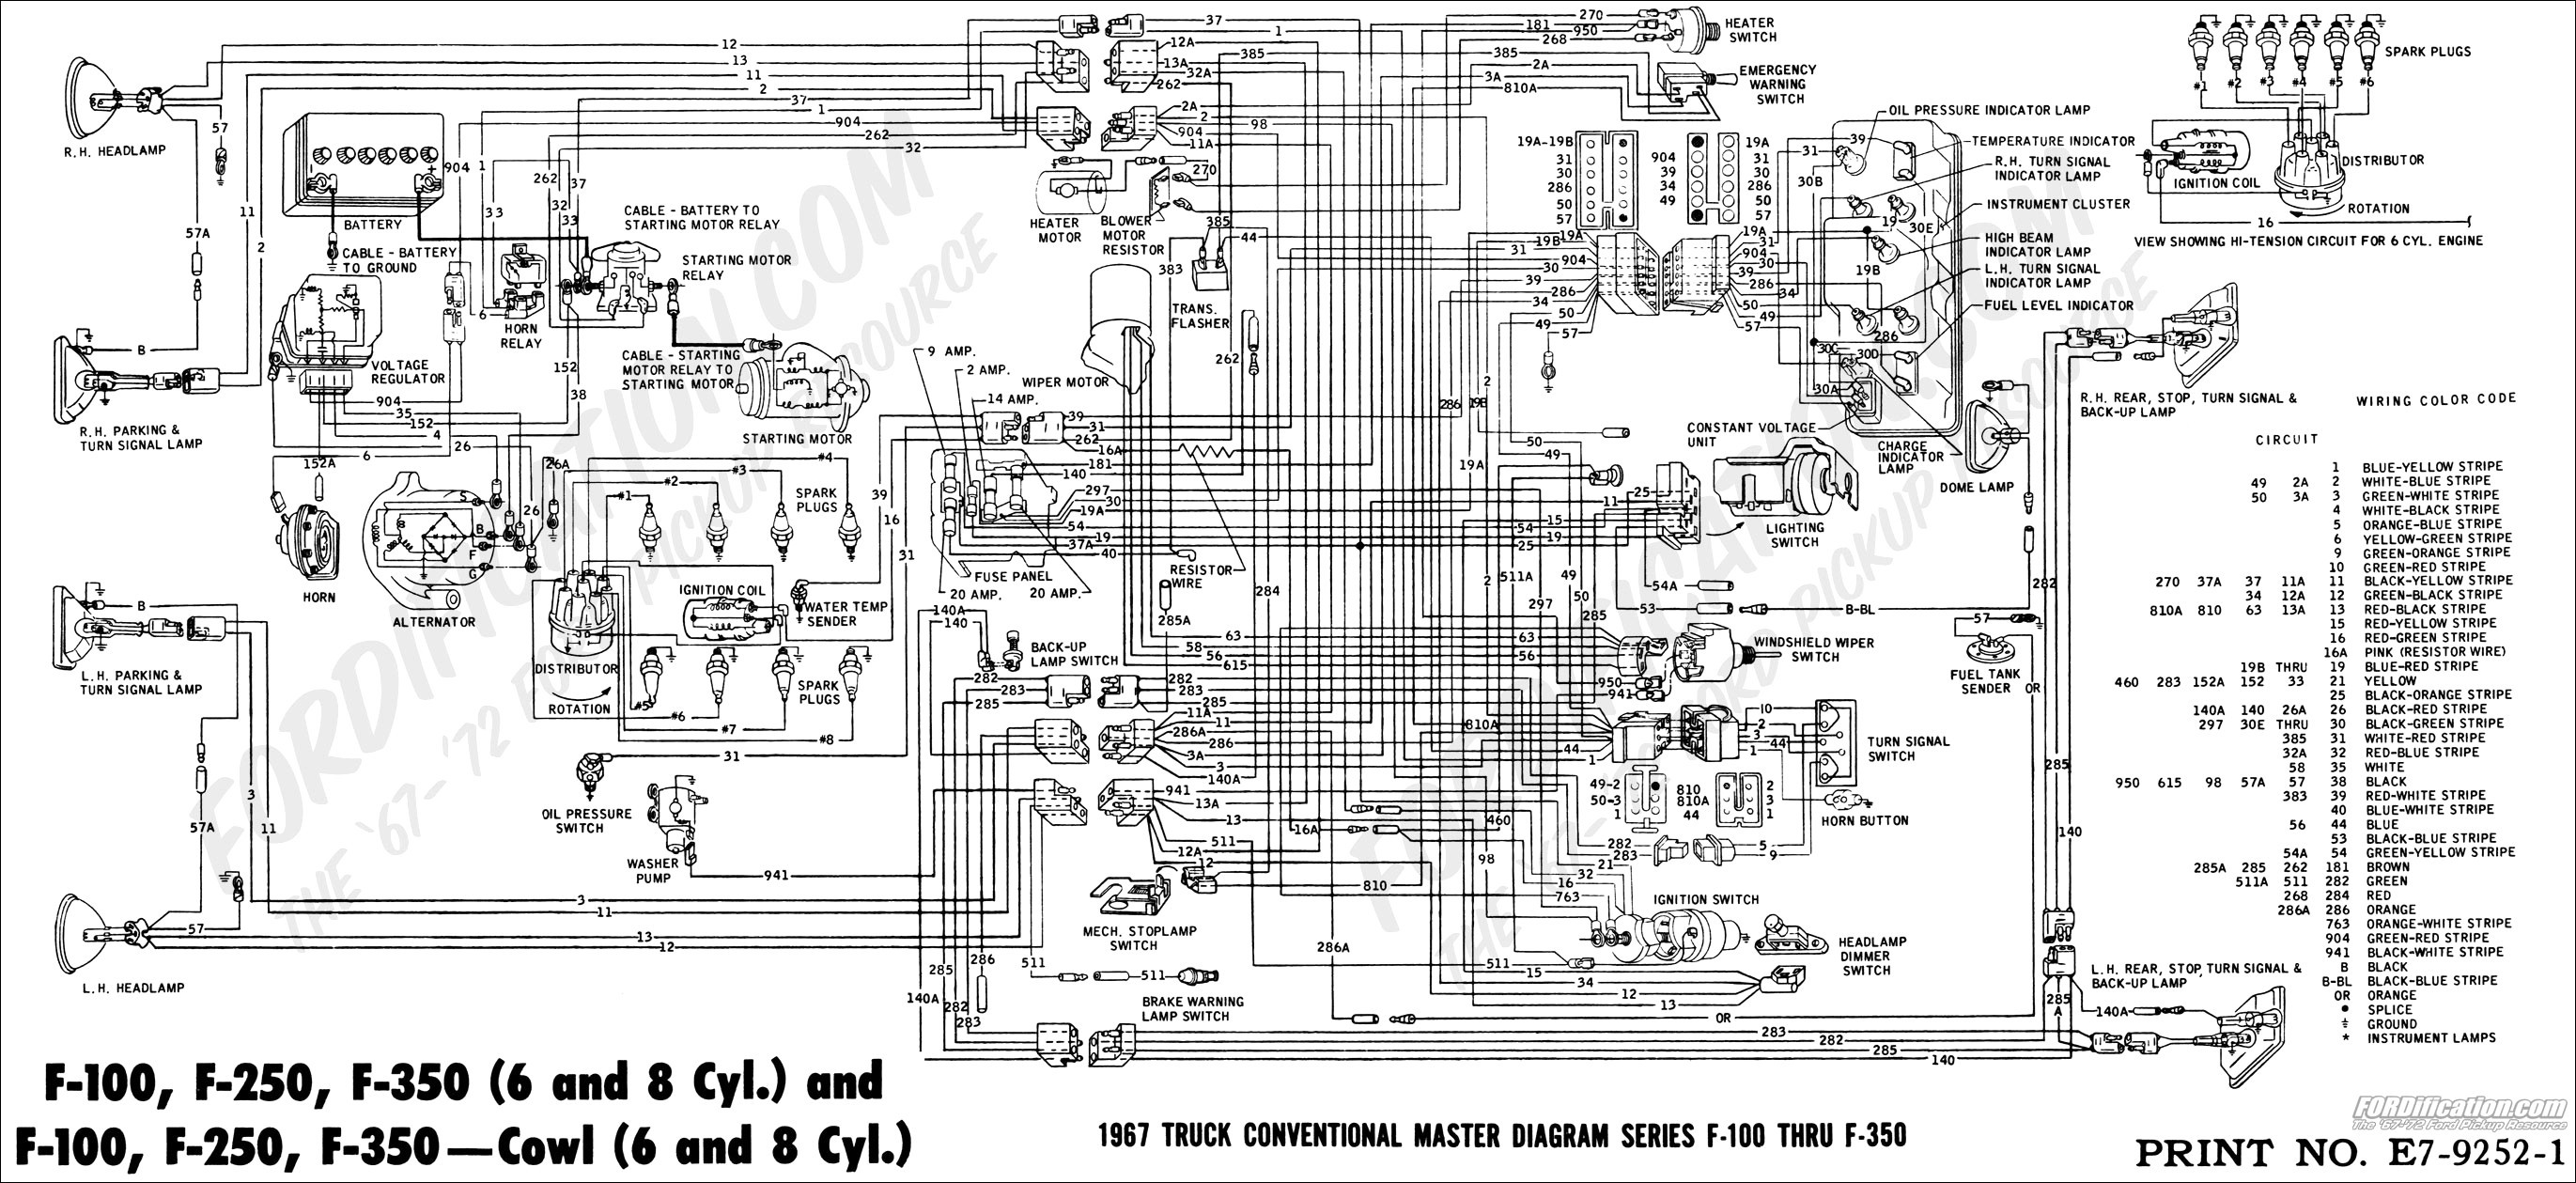 1991 ford f 150 ignition wiring diagram wire center u2022 rh theiquest co 1985 Ford F -250 Carburetor 1984 F150 Wiring Diagram PDF